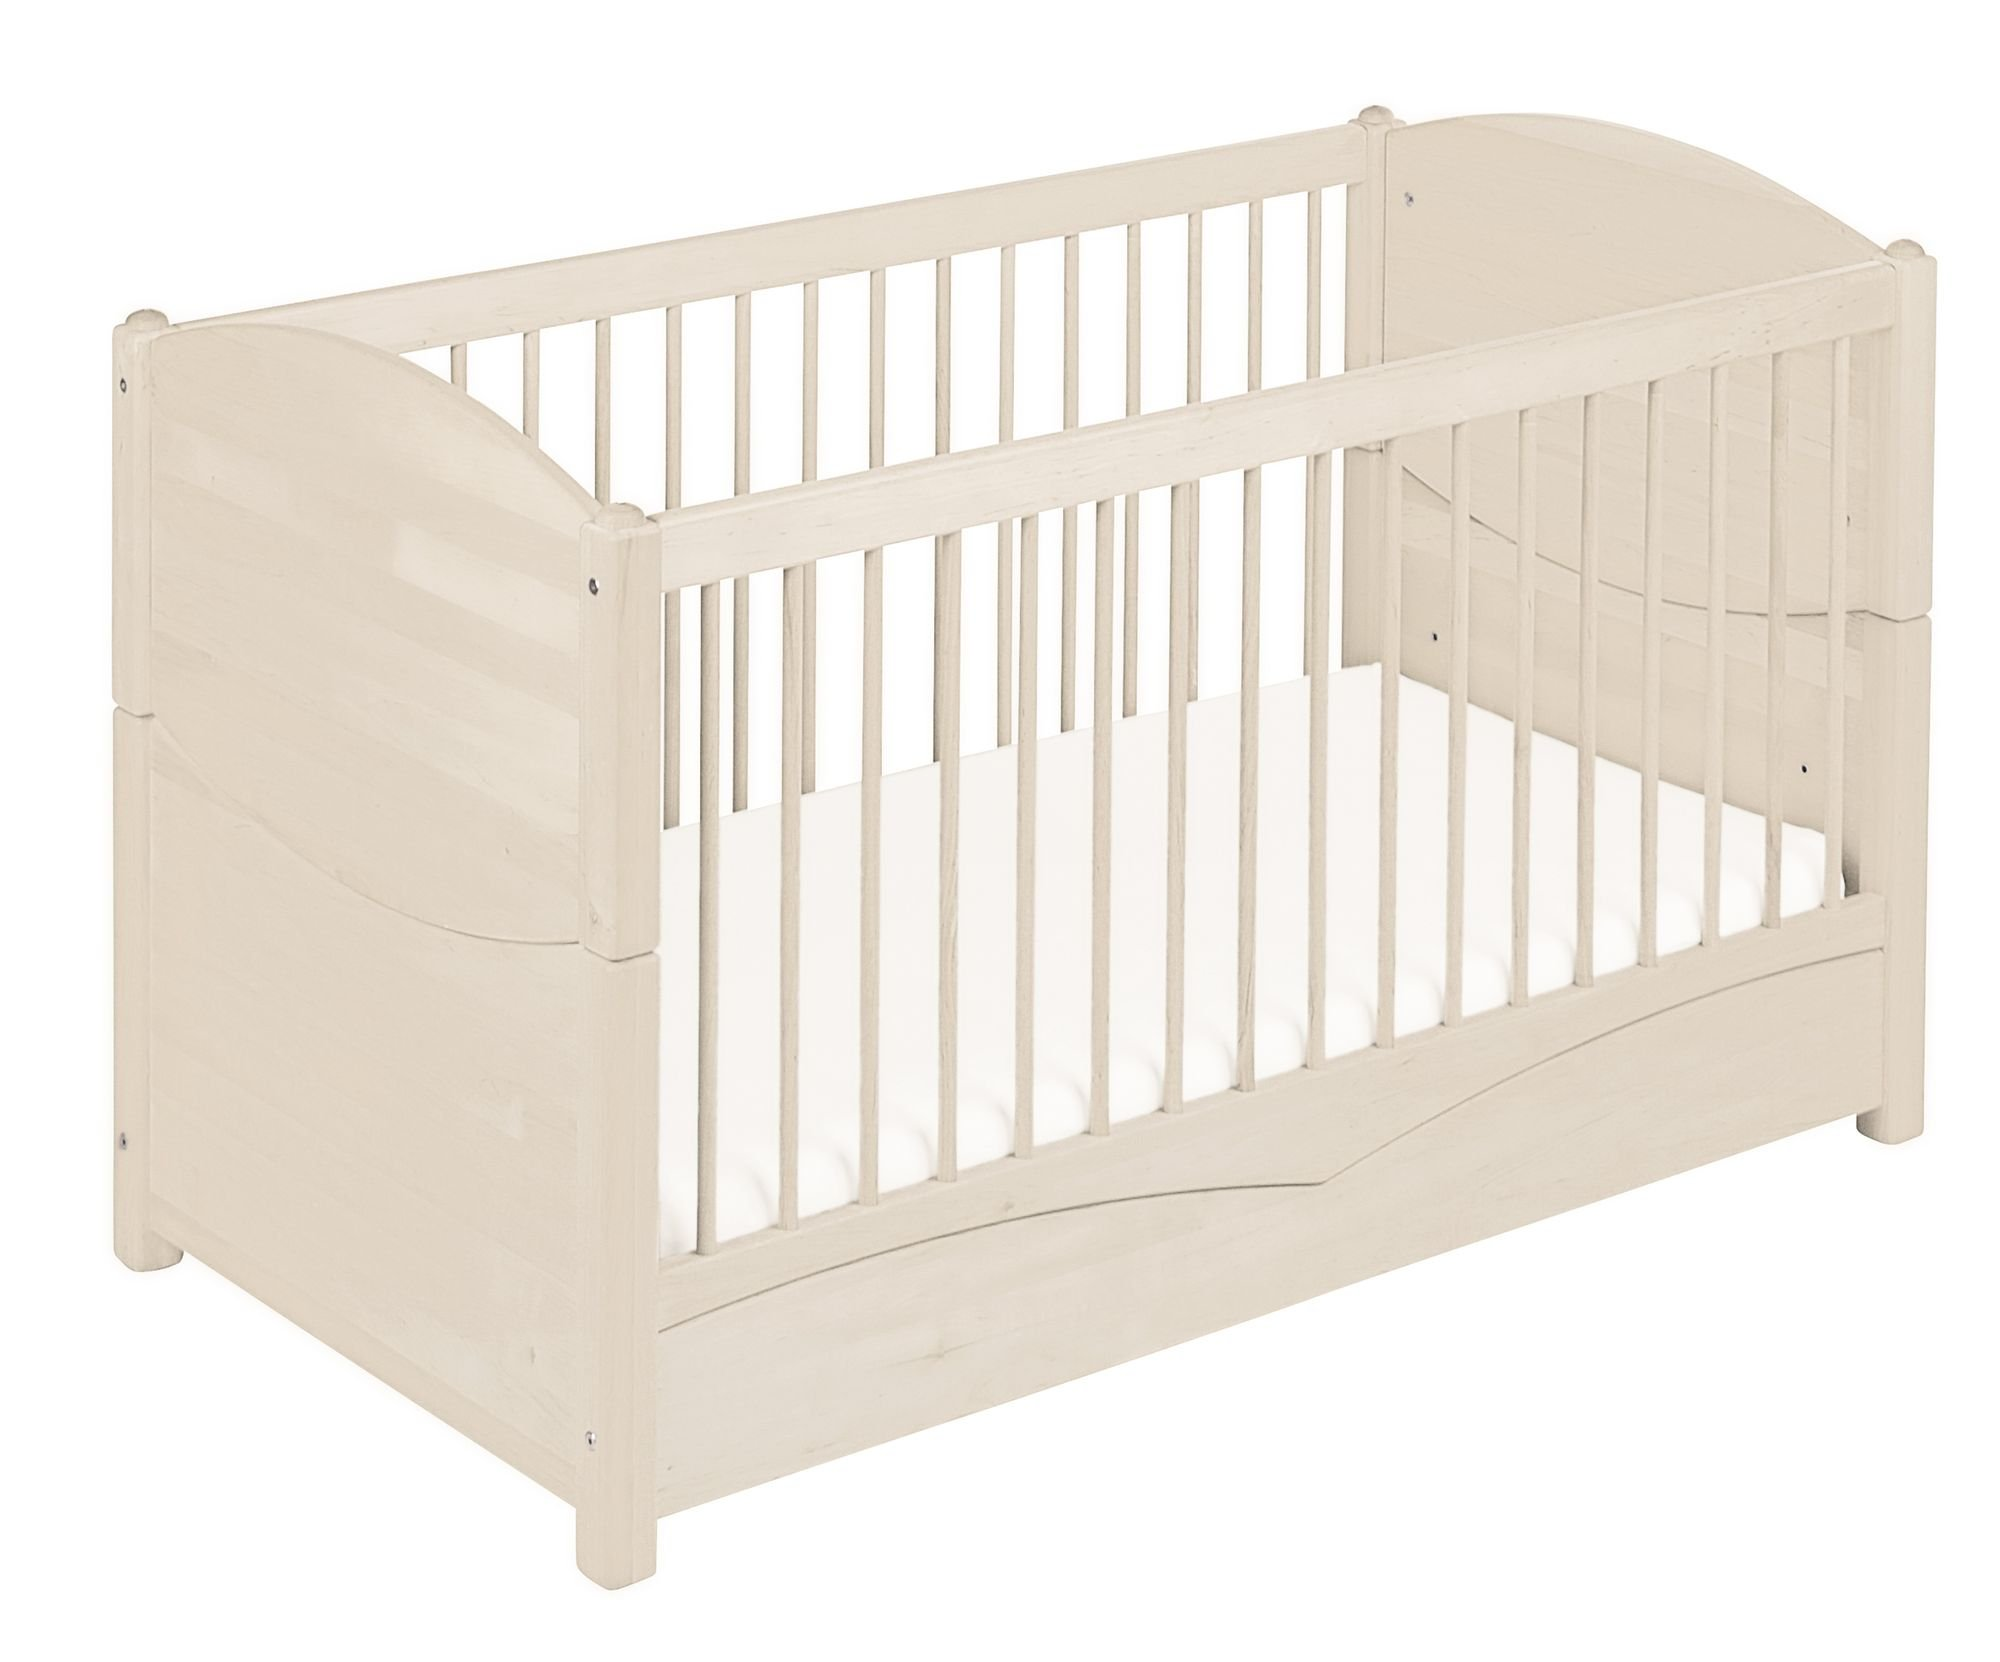 BioKinder 22128 Bed for babies and toddlers Luca from biological wood Bio-Kinder Bed Luca for Babies and Toddlers Adjustable height. 3 removable bars. Various features Sustainable solid biological wood (alder/pine). Biological finish 1